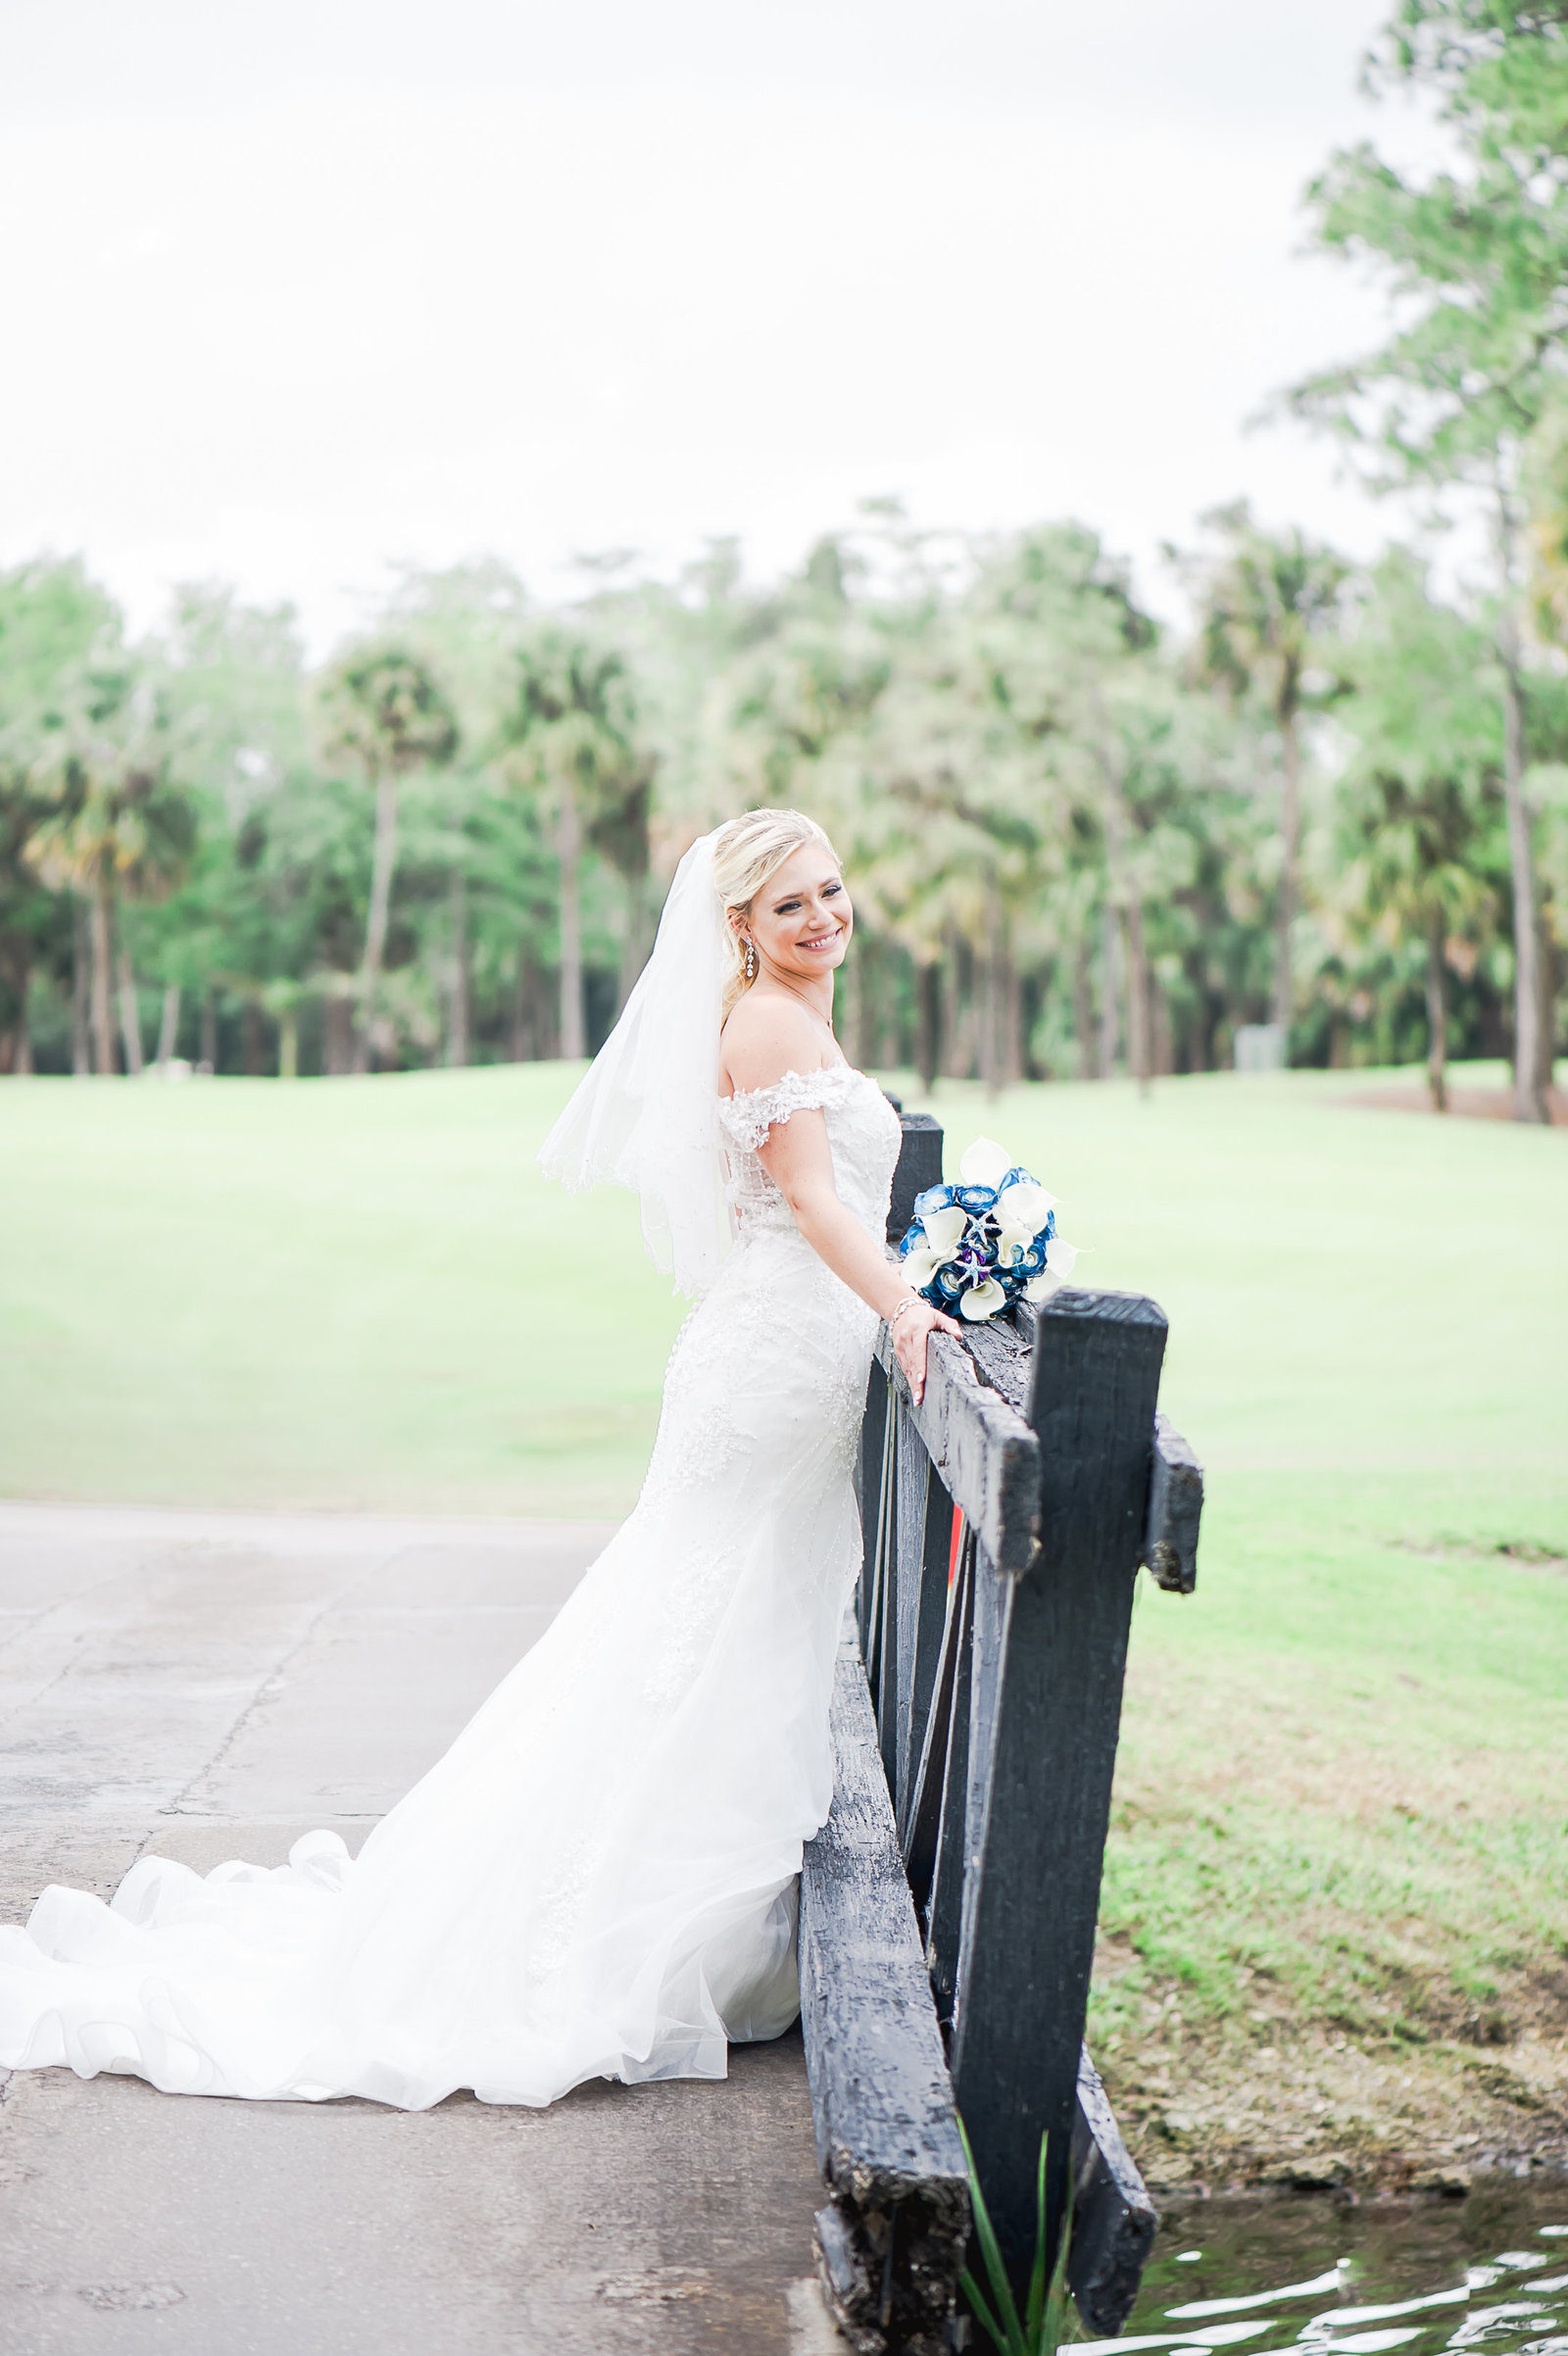 Happy Bride - Myacoo Country Club Wedding - Palm Beach Wedding Photography by Palm Beach Photography, Inc.